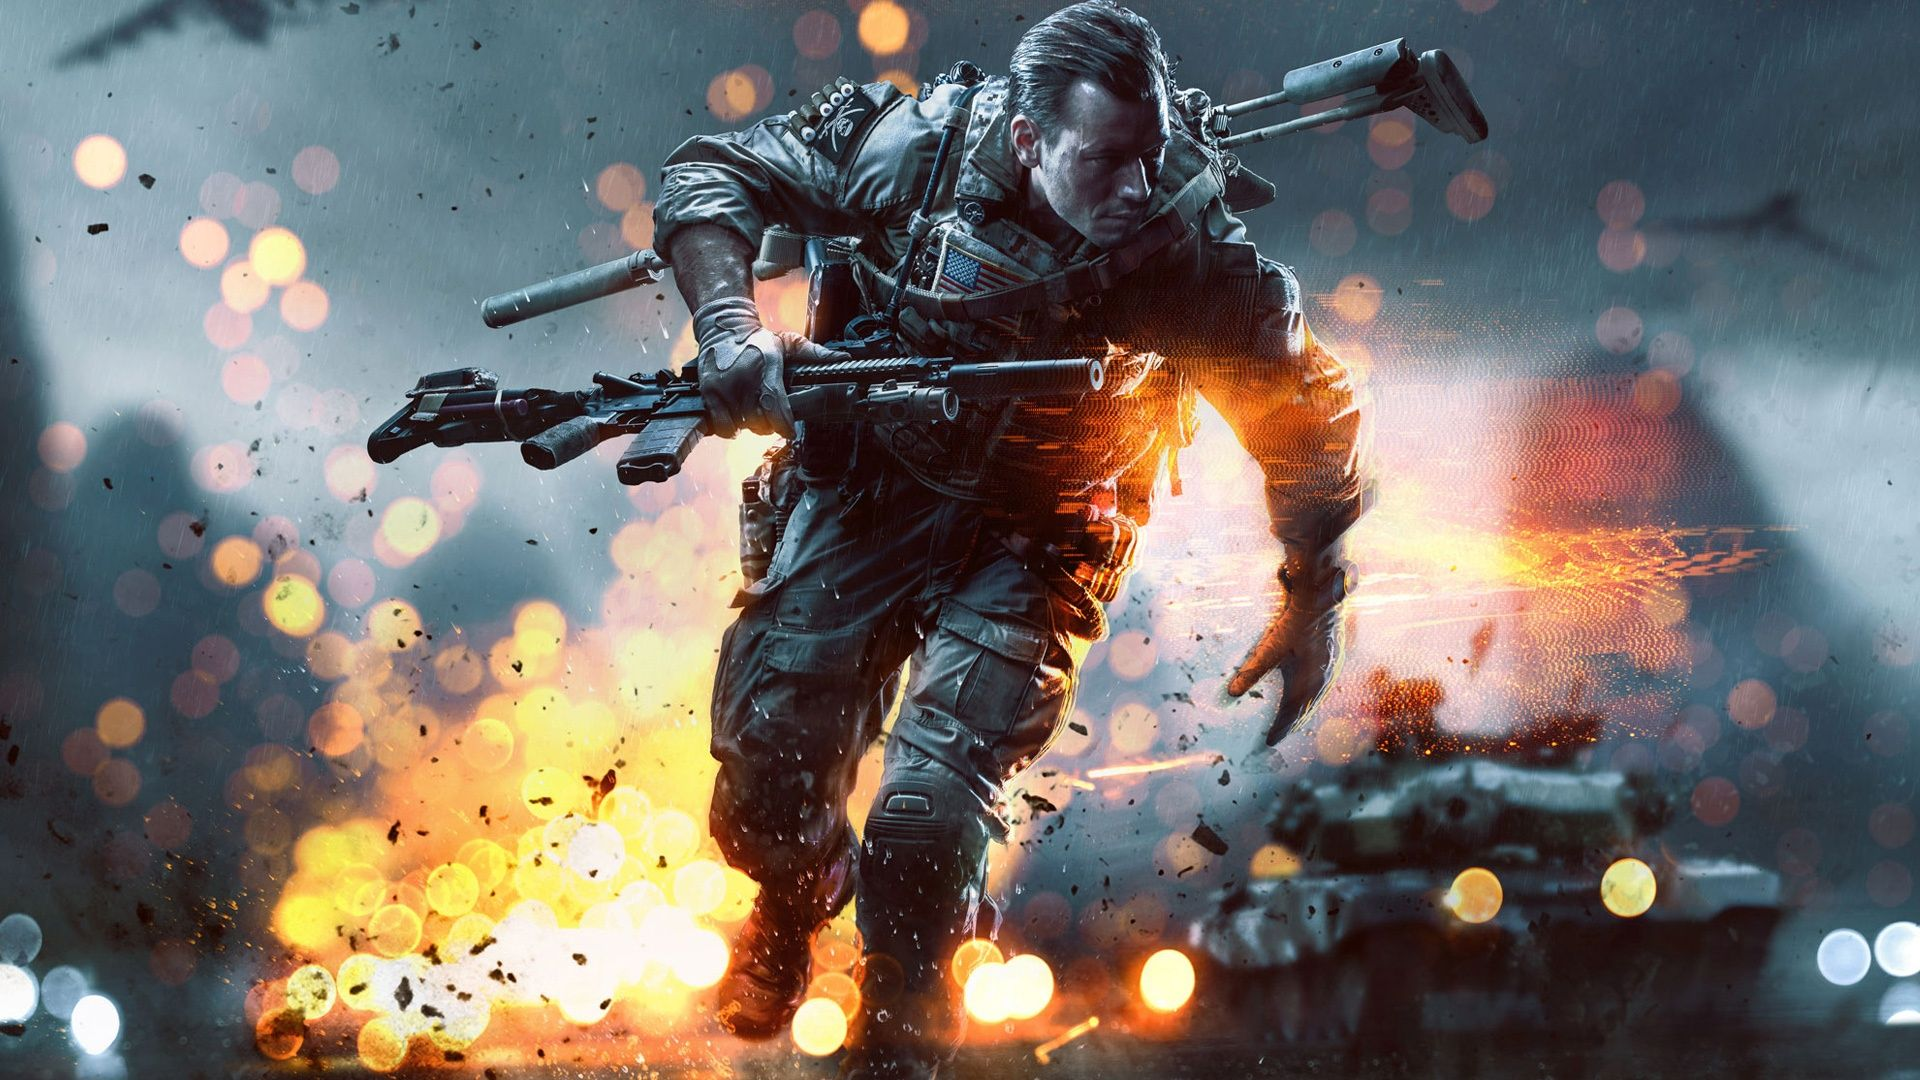 Download Battlefield 4 Key Generator For All Platforms With